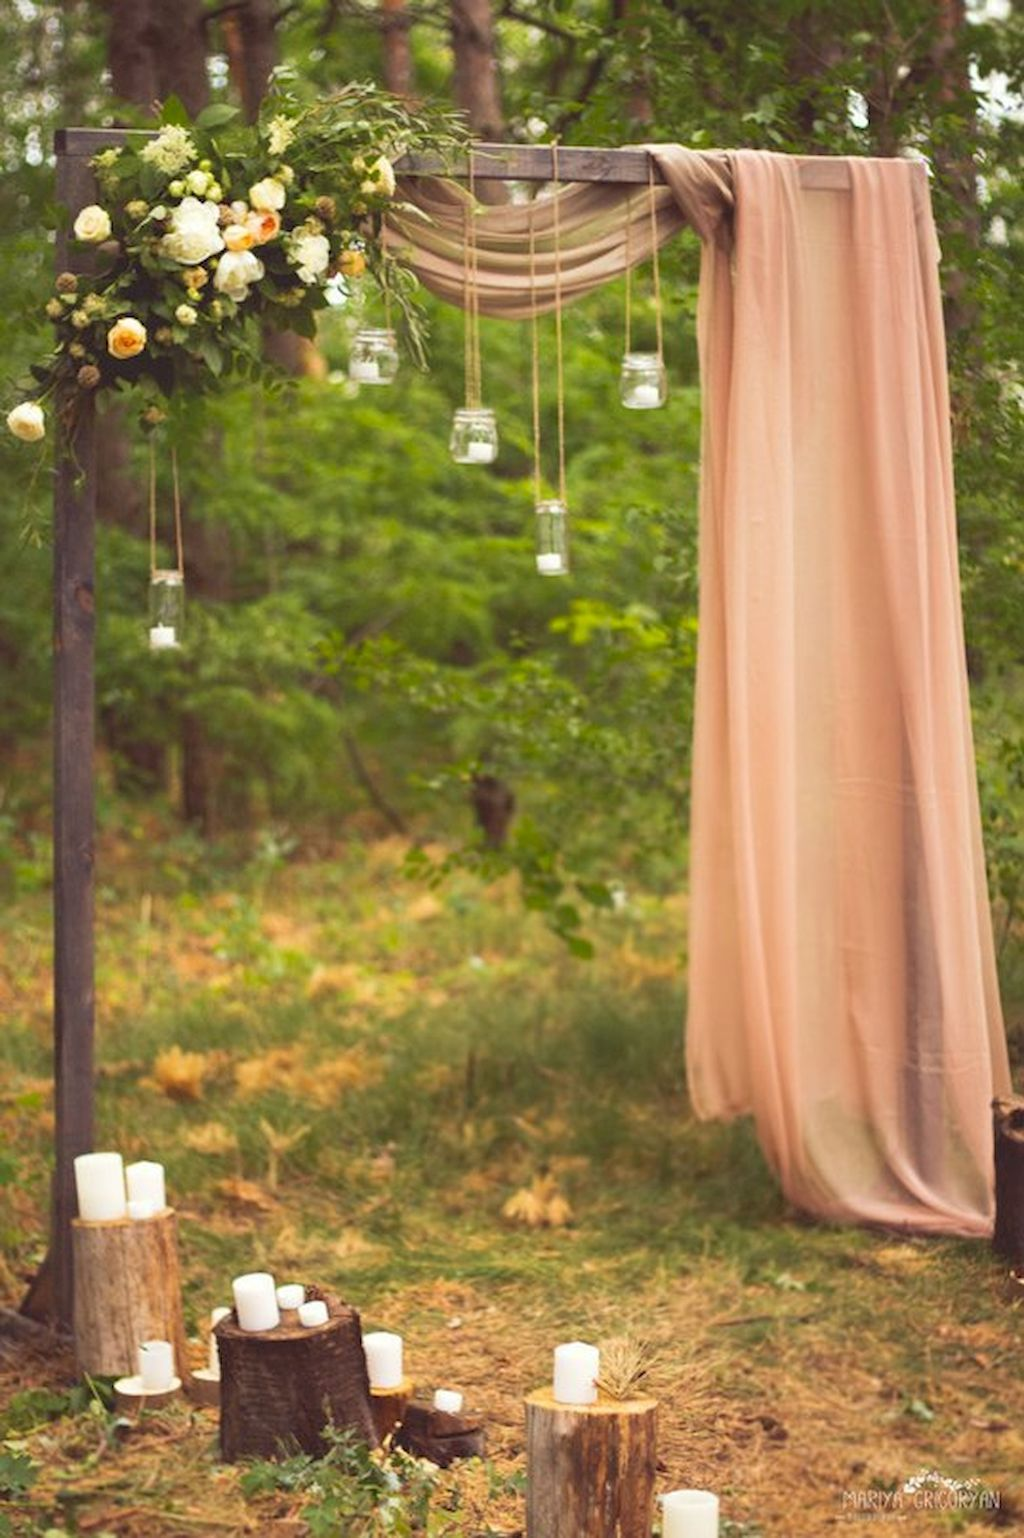 48 elegant outdoor wedding decor ideas on a budget budgeting 48 elegant outdoor wedding decor ideas on a budget floral weddingsimple wedding archsimple junglespirit Choice Image